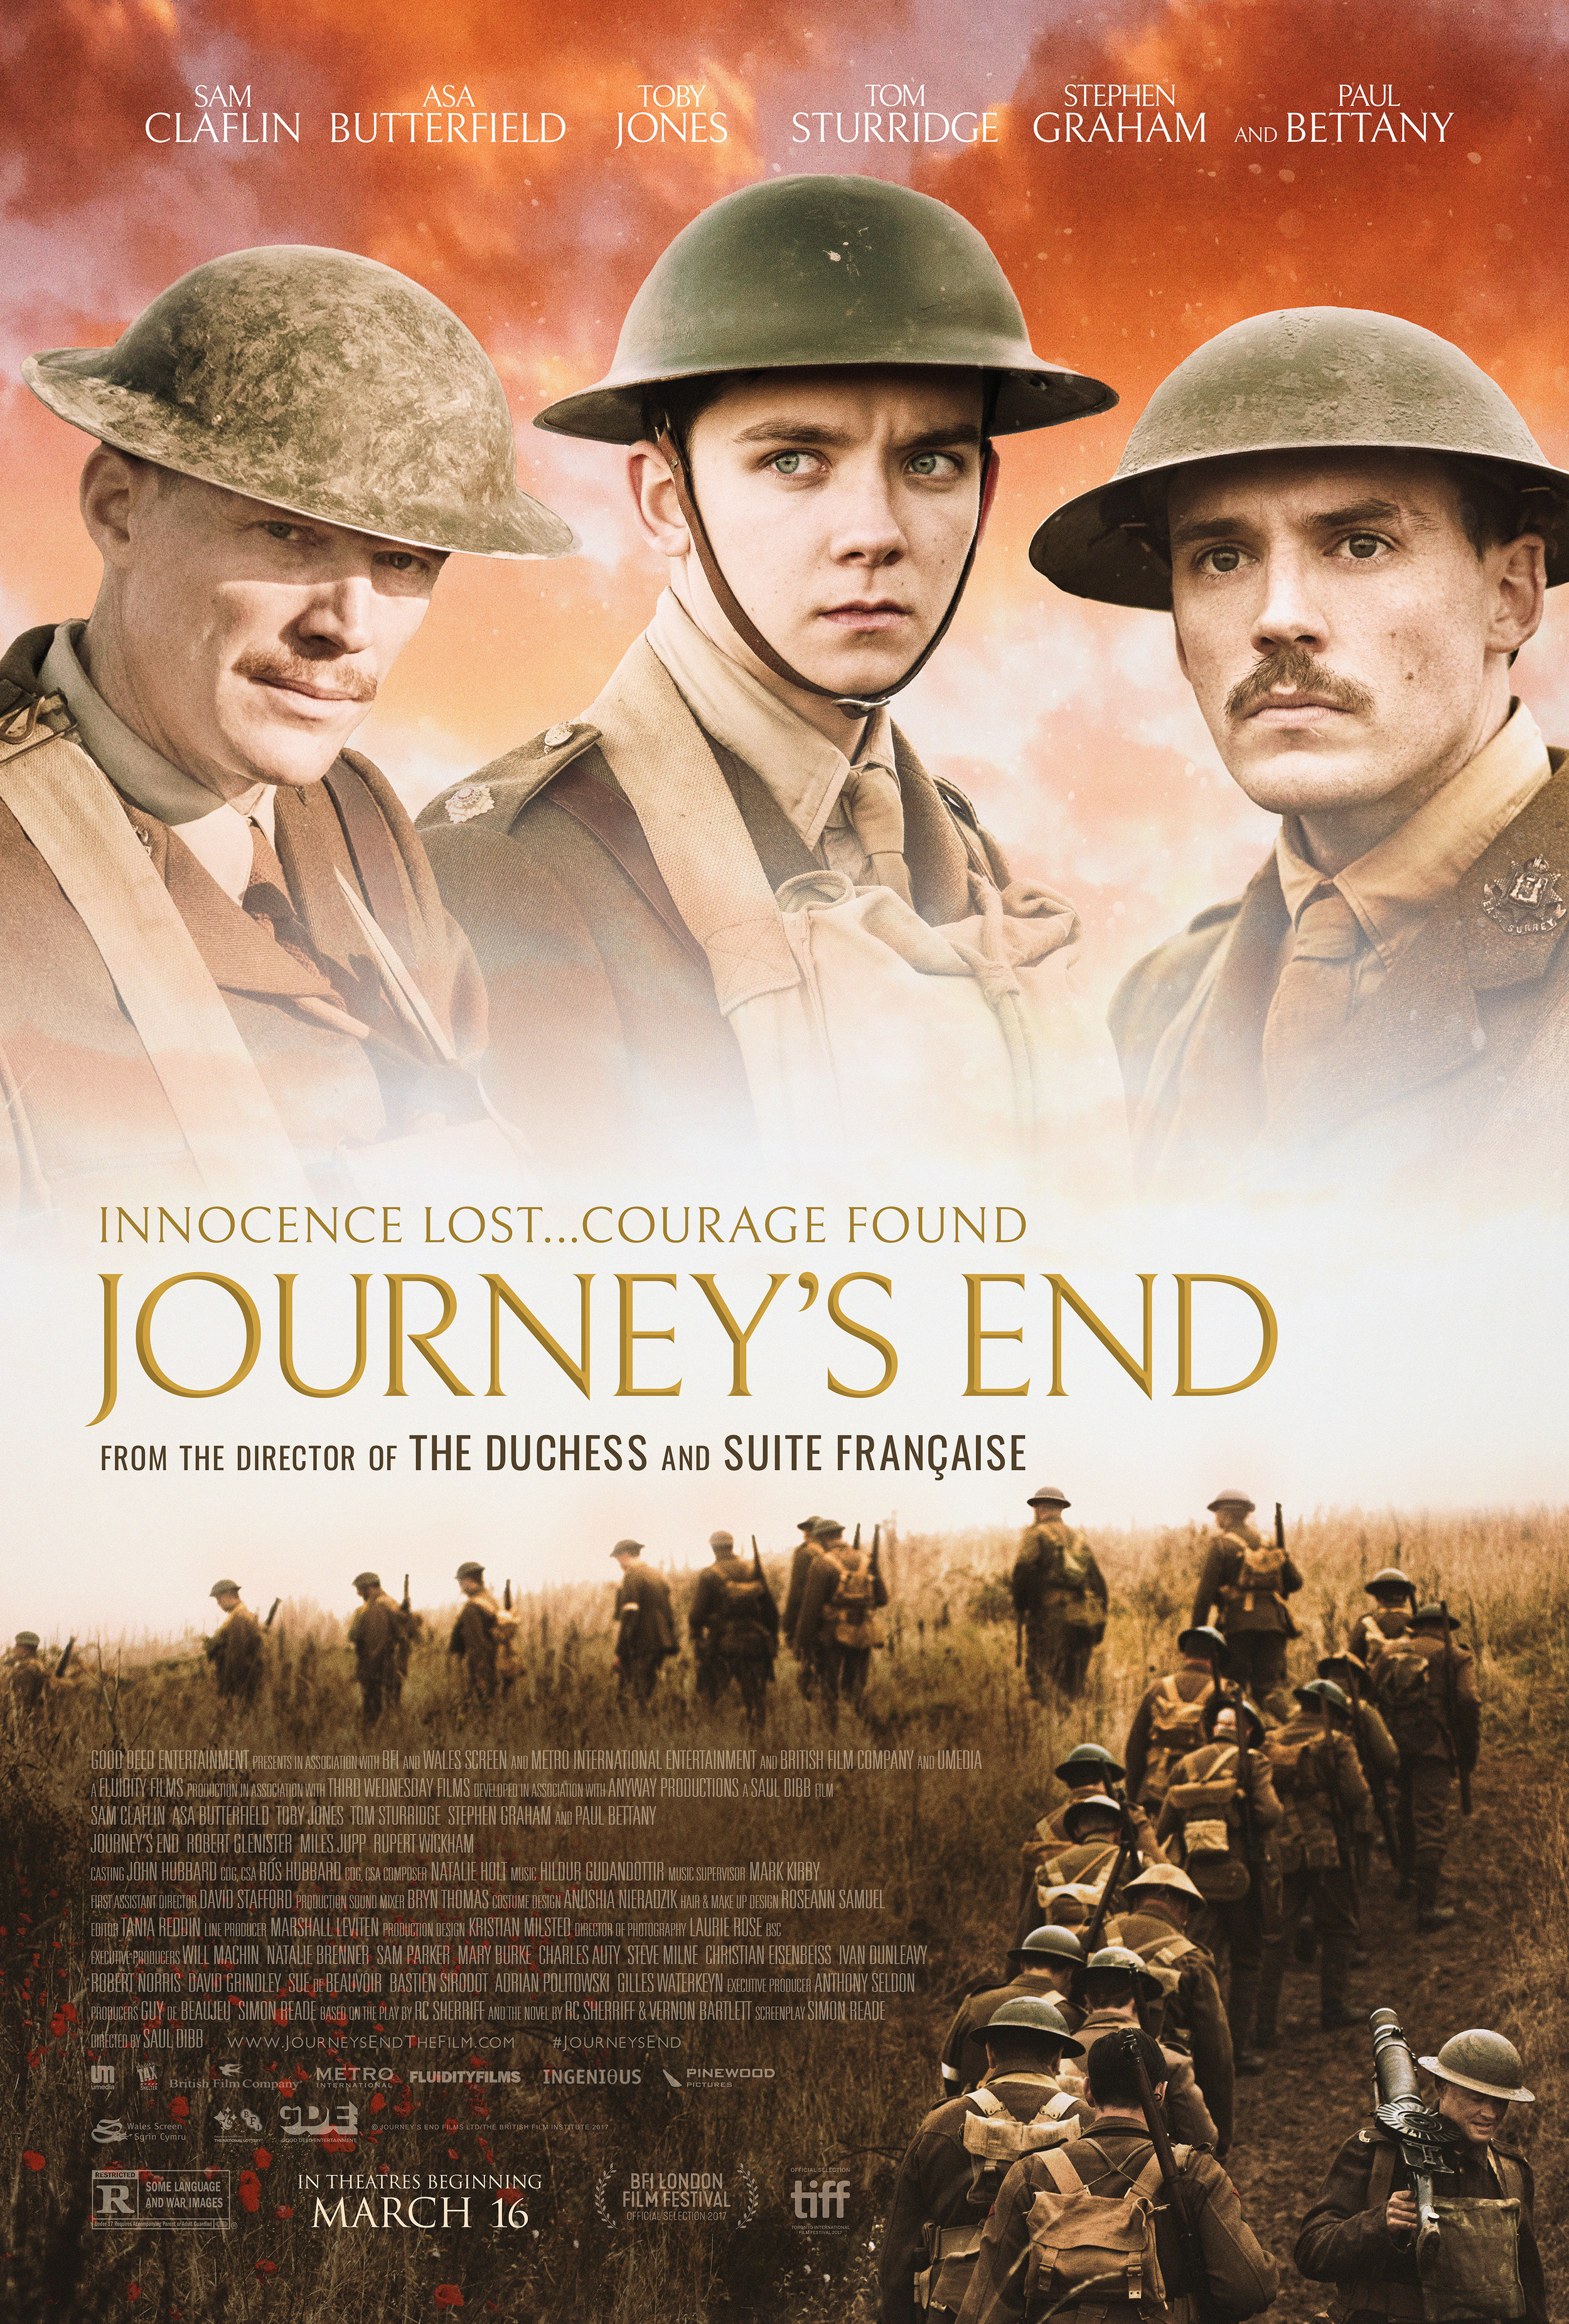 JOURNEYSEND_KEYART_FINAL_3_EMAILSIZE.jpg